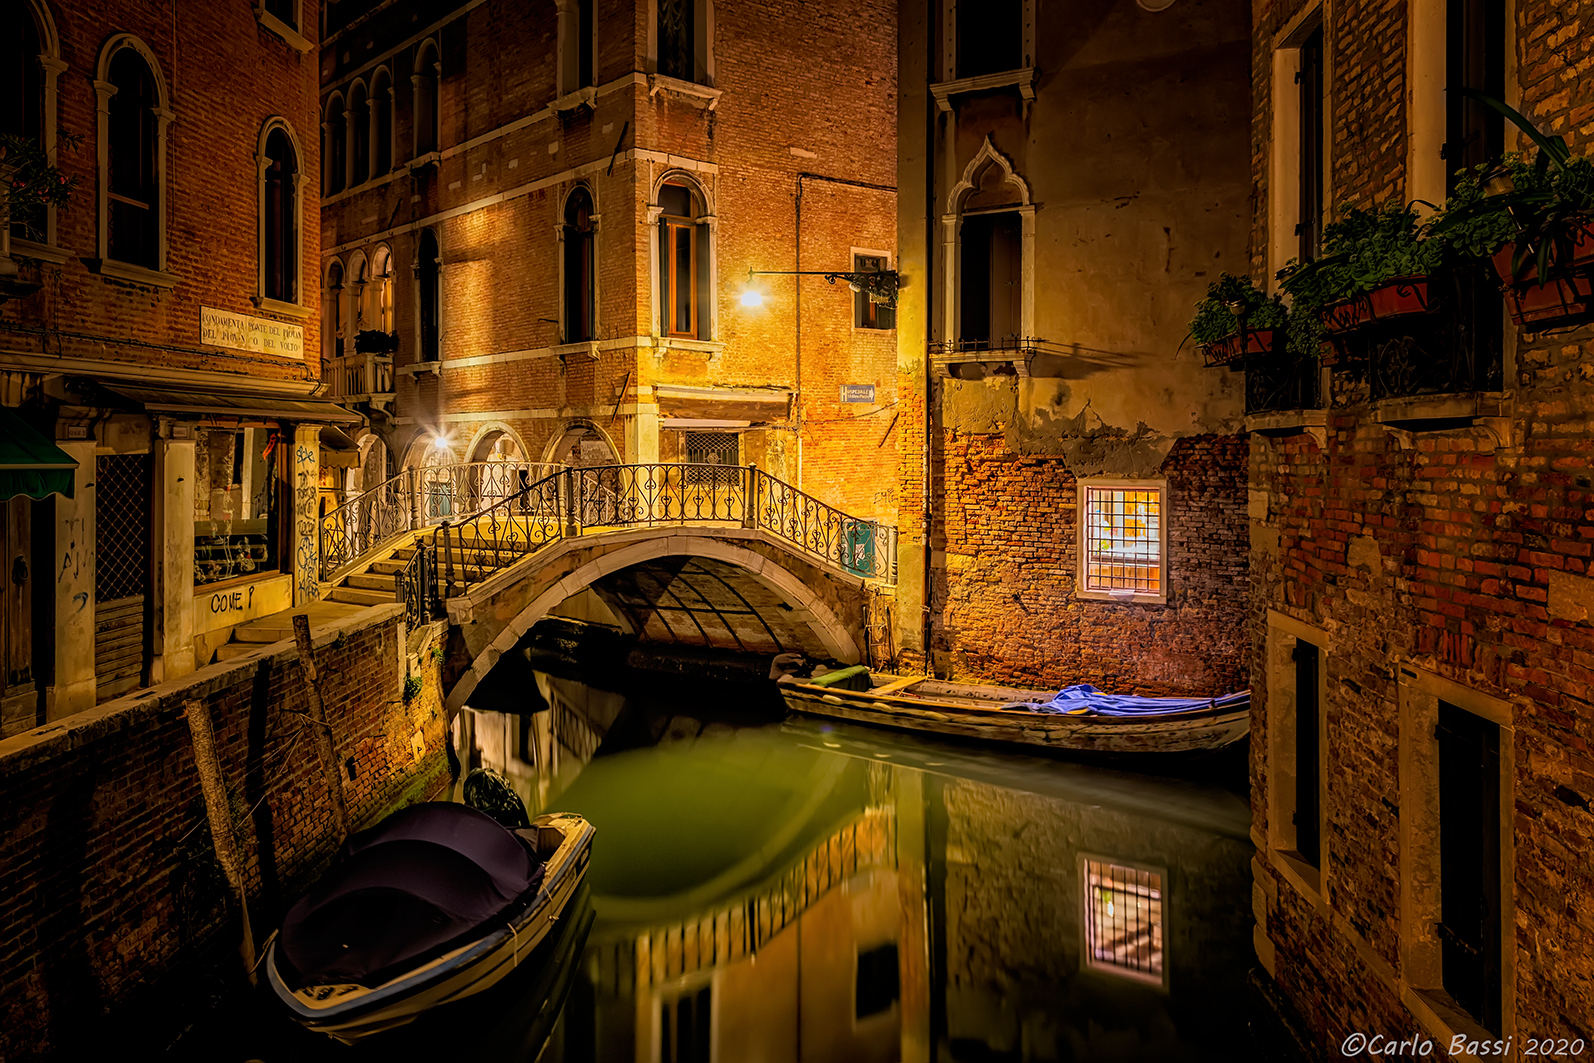 Venice by night...